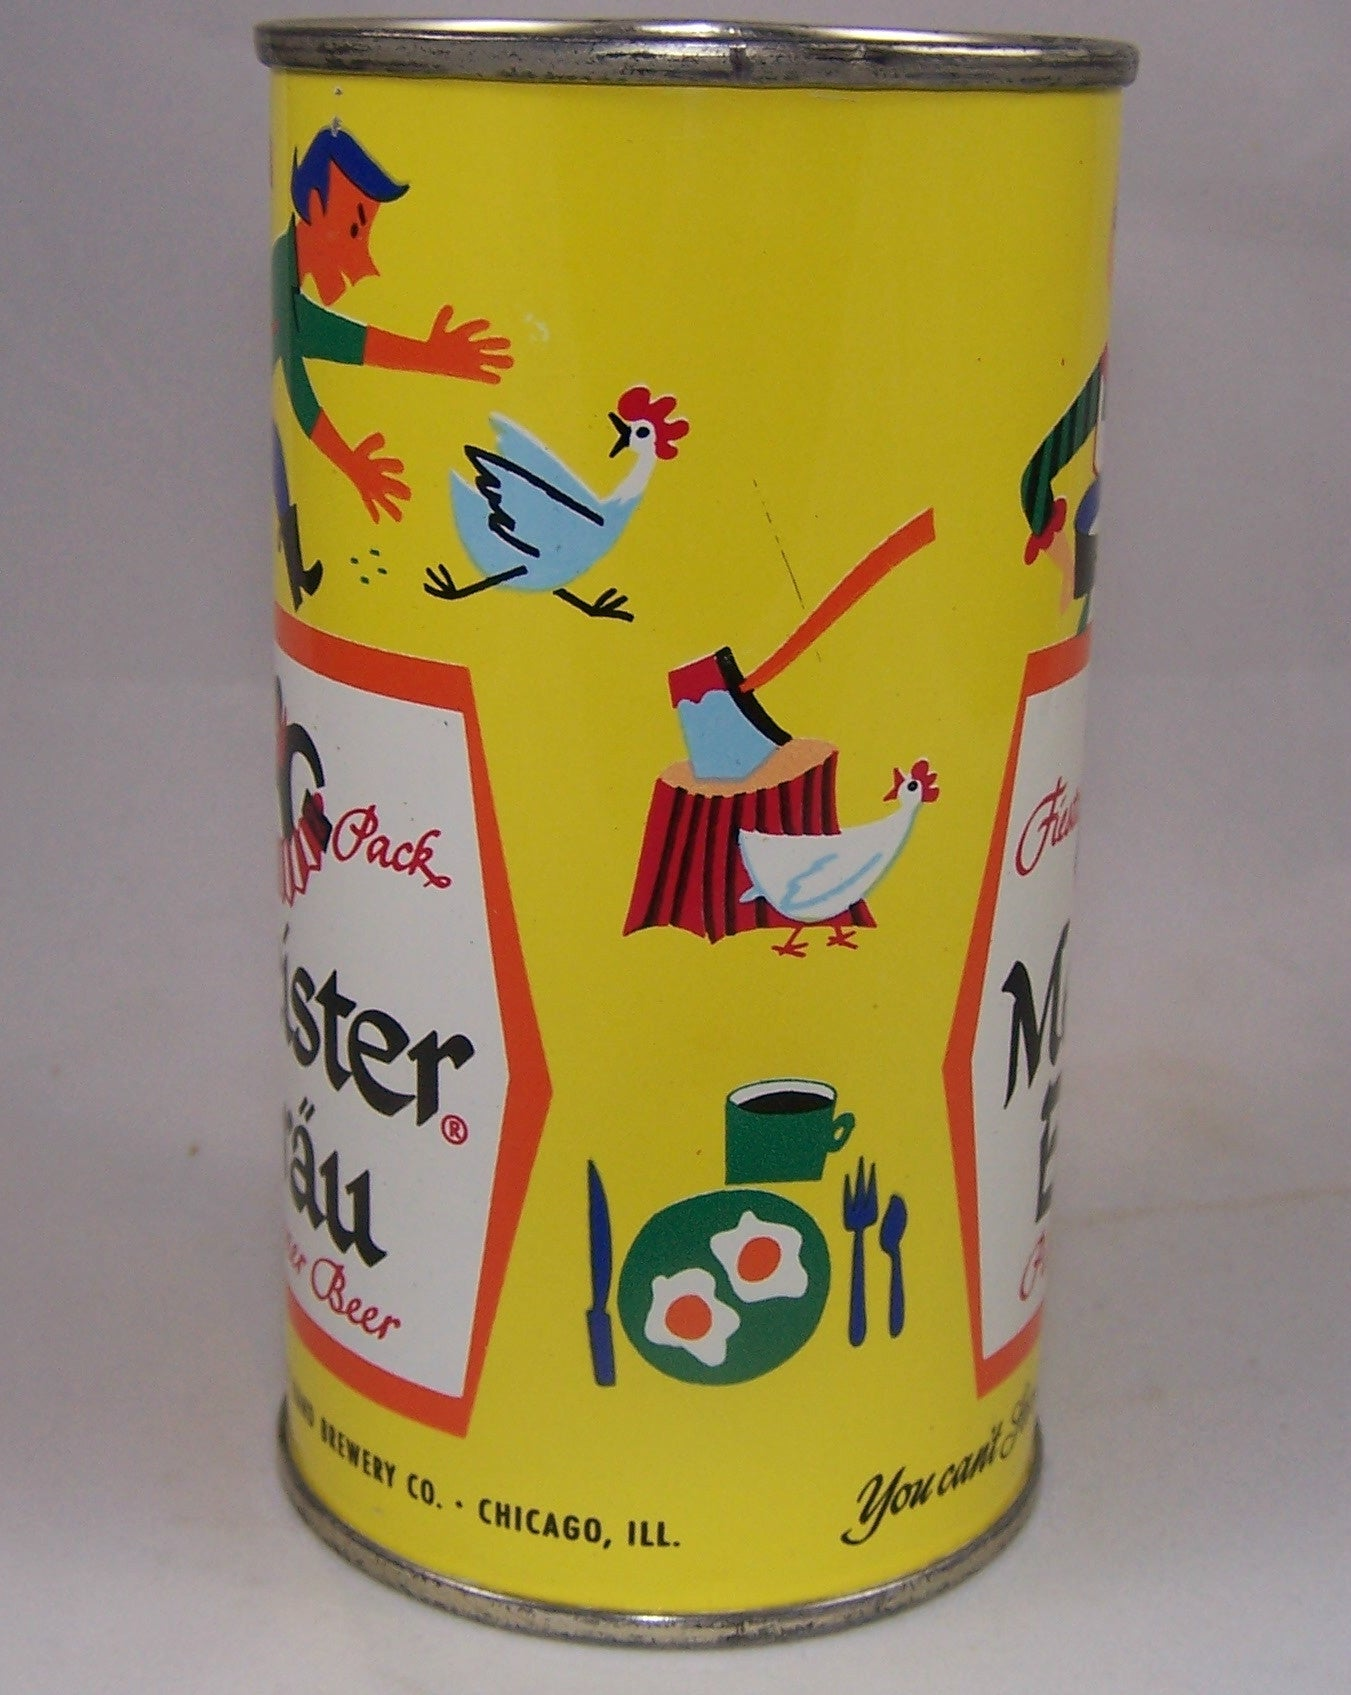 Meister Brau Fiesta Pack, USBC 98-1, Grade A1+ Sold on 10/13/15